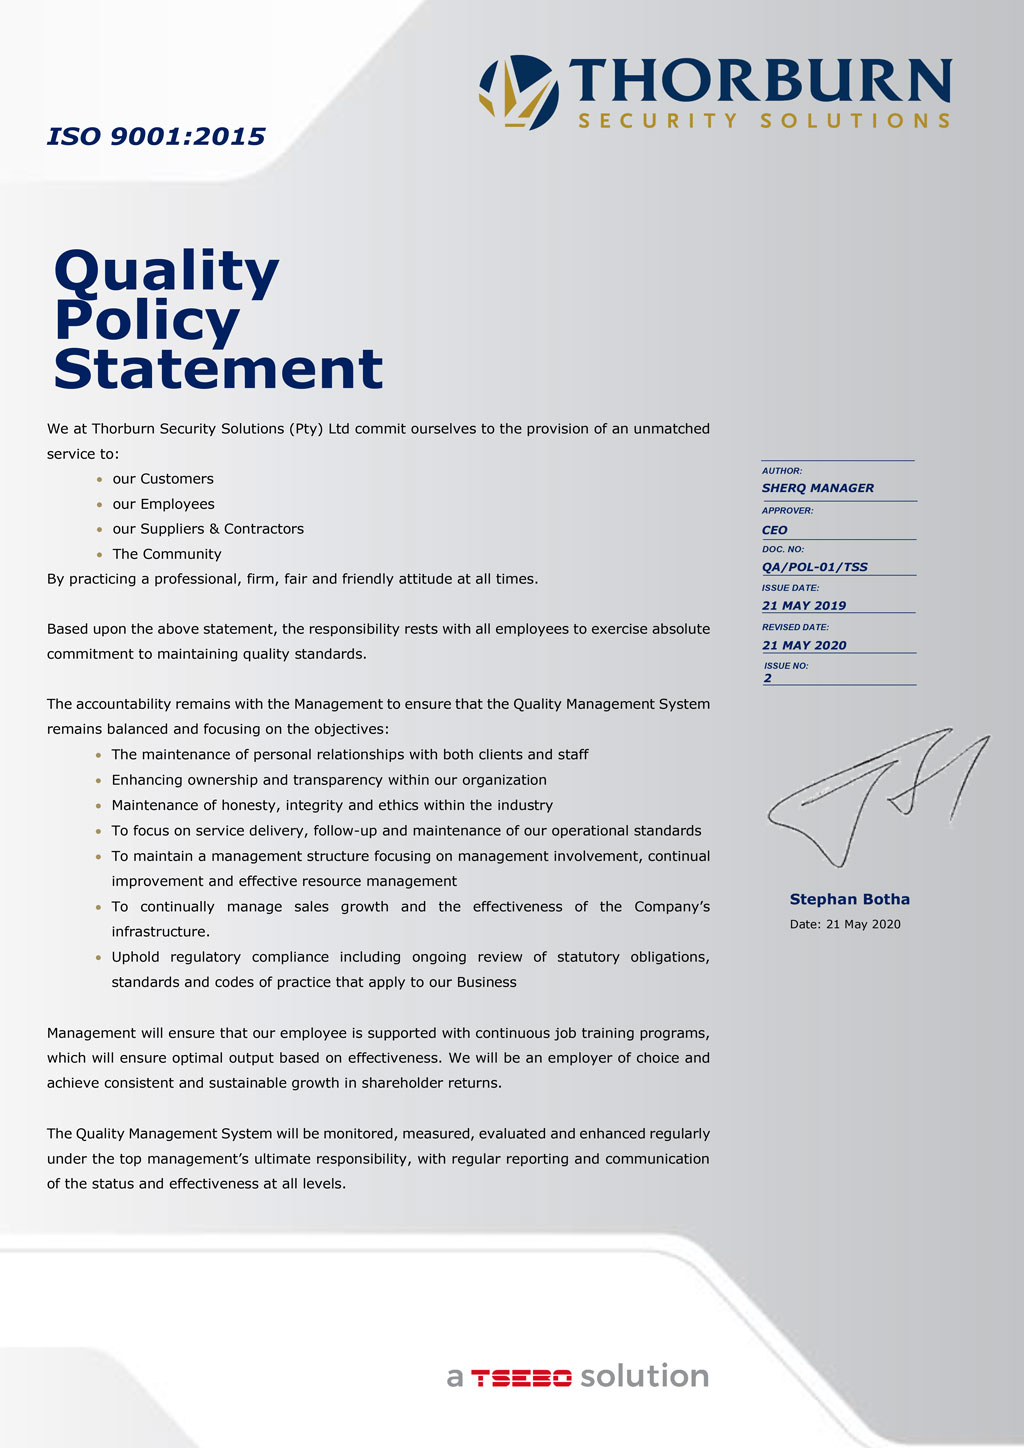 Thorburn Security Services South Africa - Our Values - Quality Policy Statement